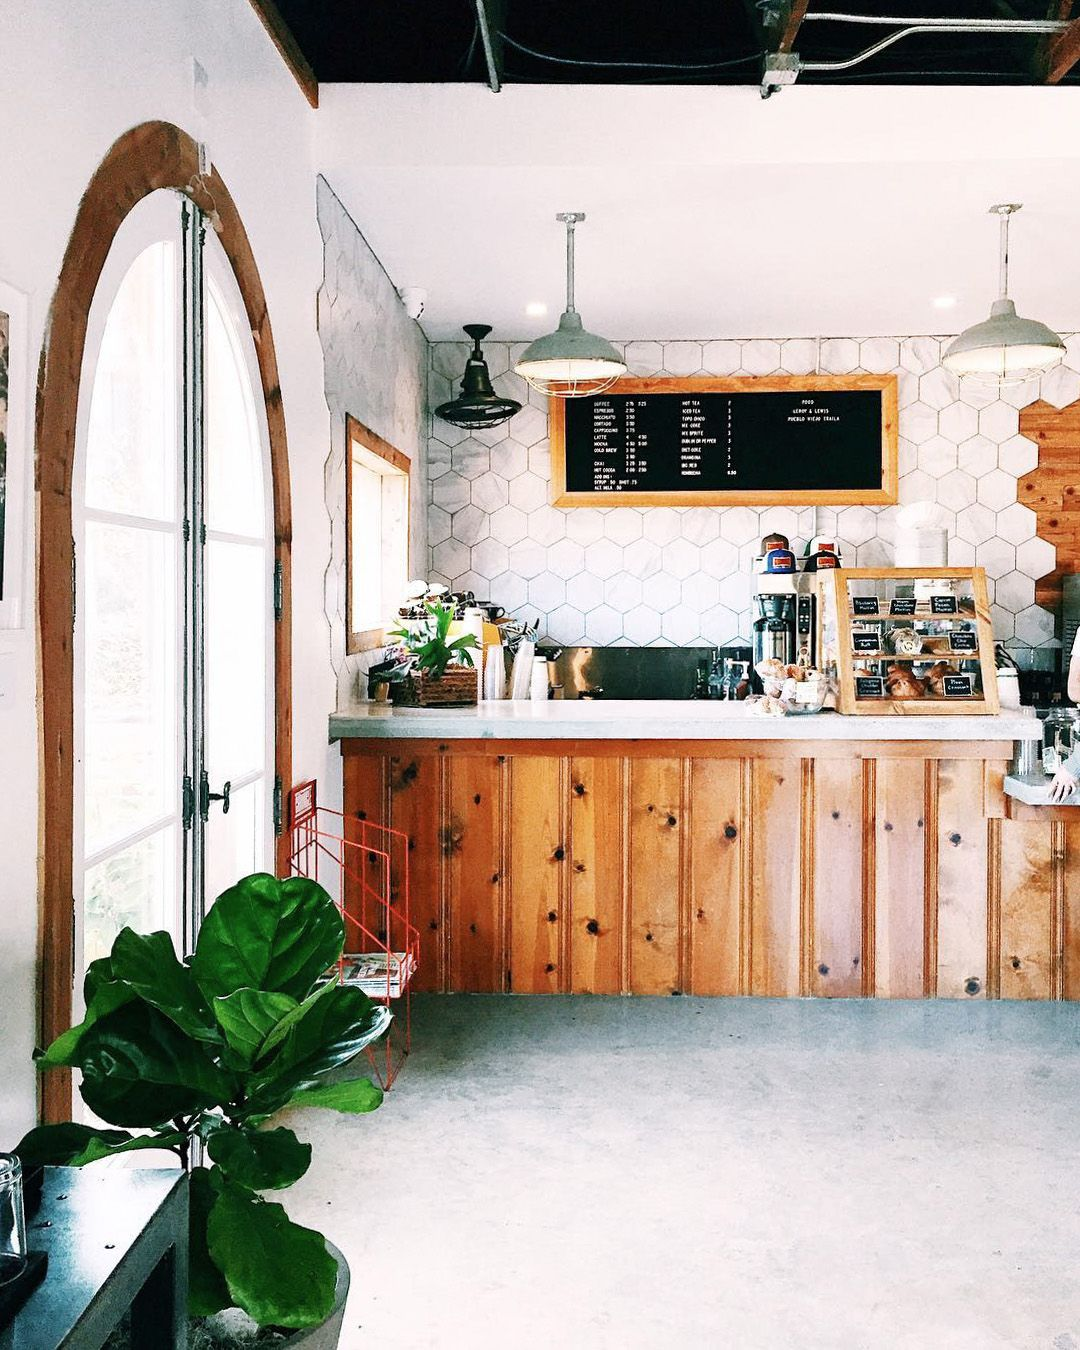 2018's Hottest New Café Openings Across the Globe Cafe